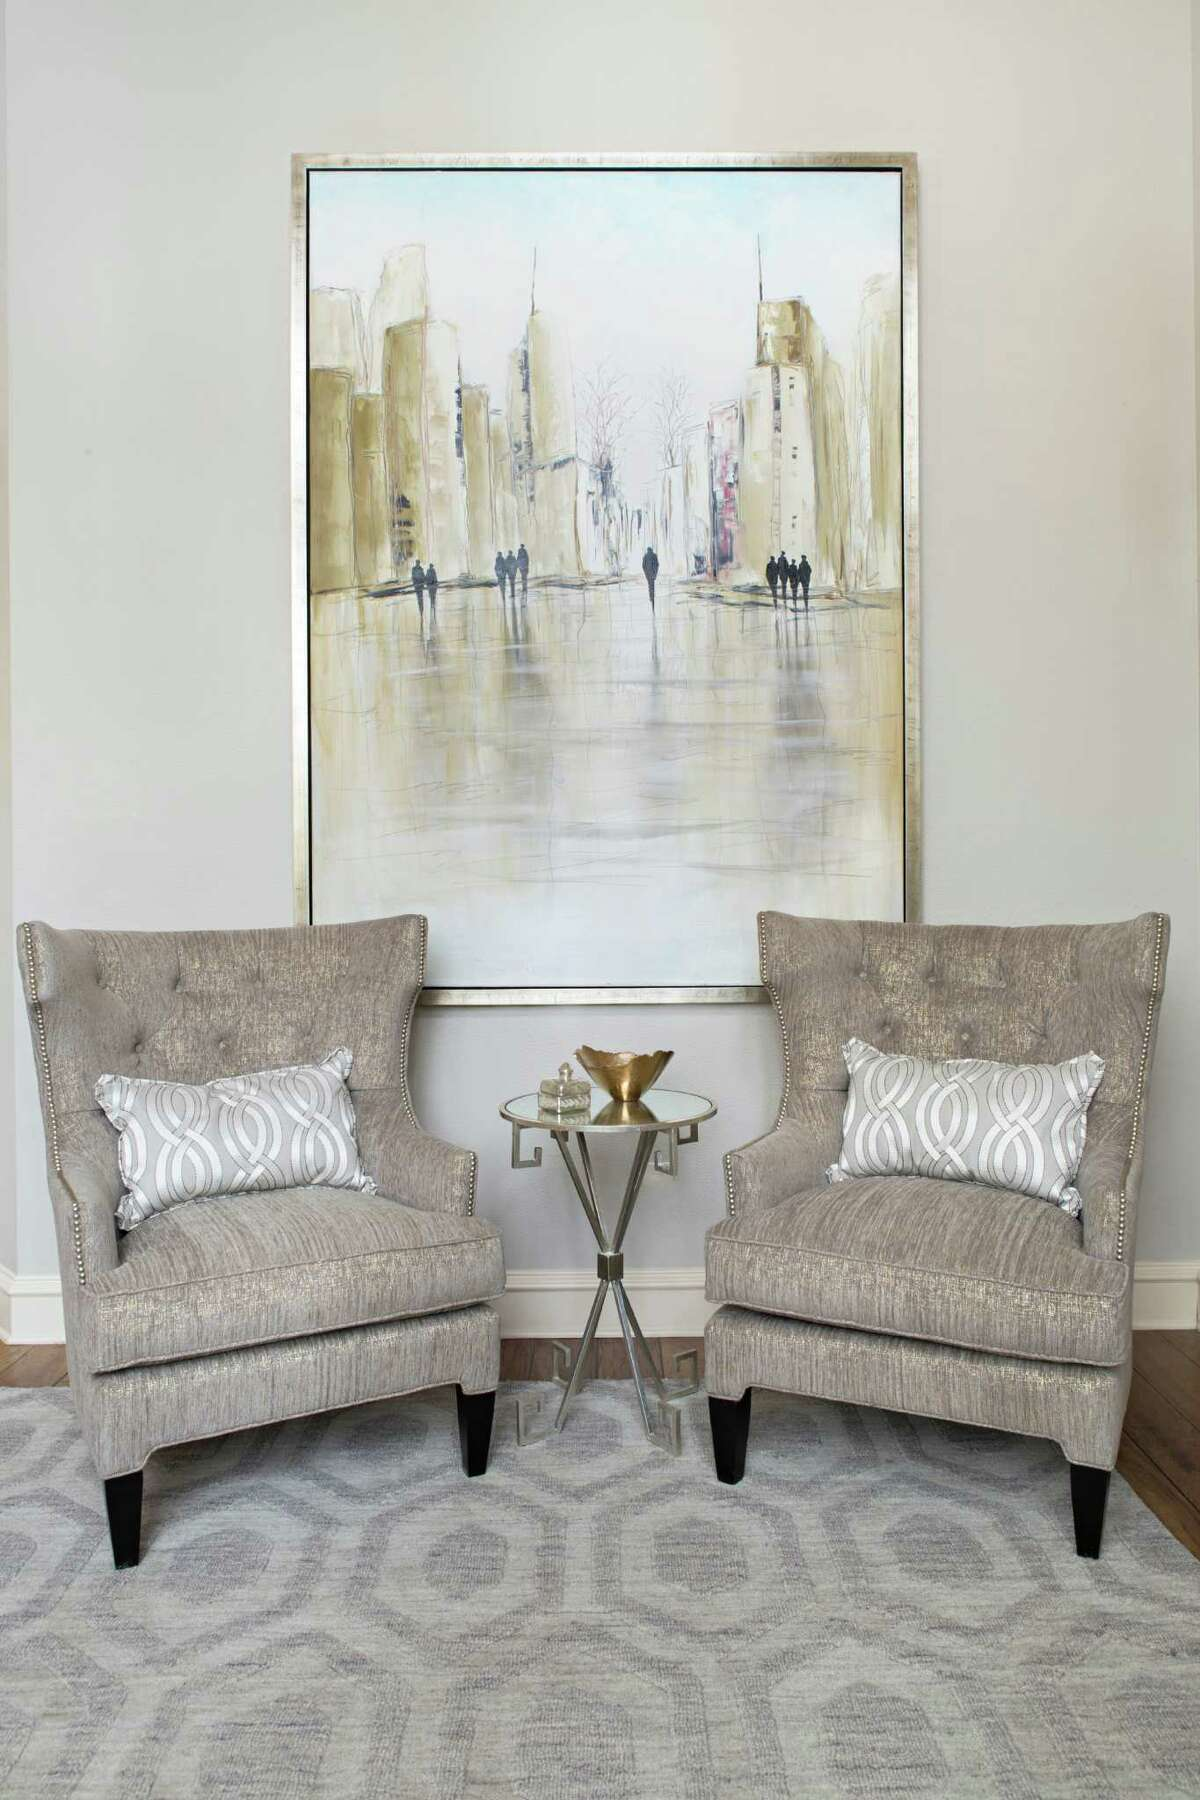 Behind the armchairs hangs a large painting Eck found in Dallas. The Liljas love New York City - it's where Jennifer was born - and they wanted to find a city scene that wouldn't darken the room.